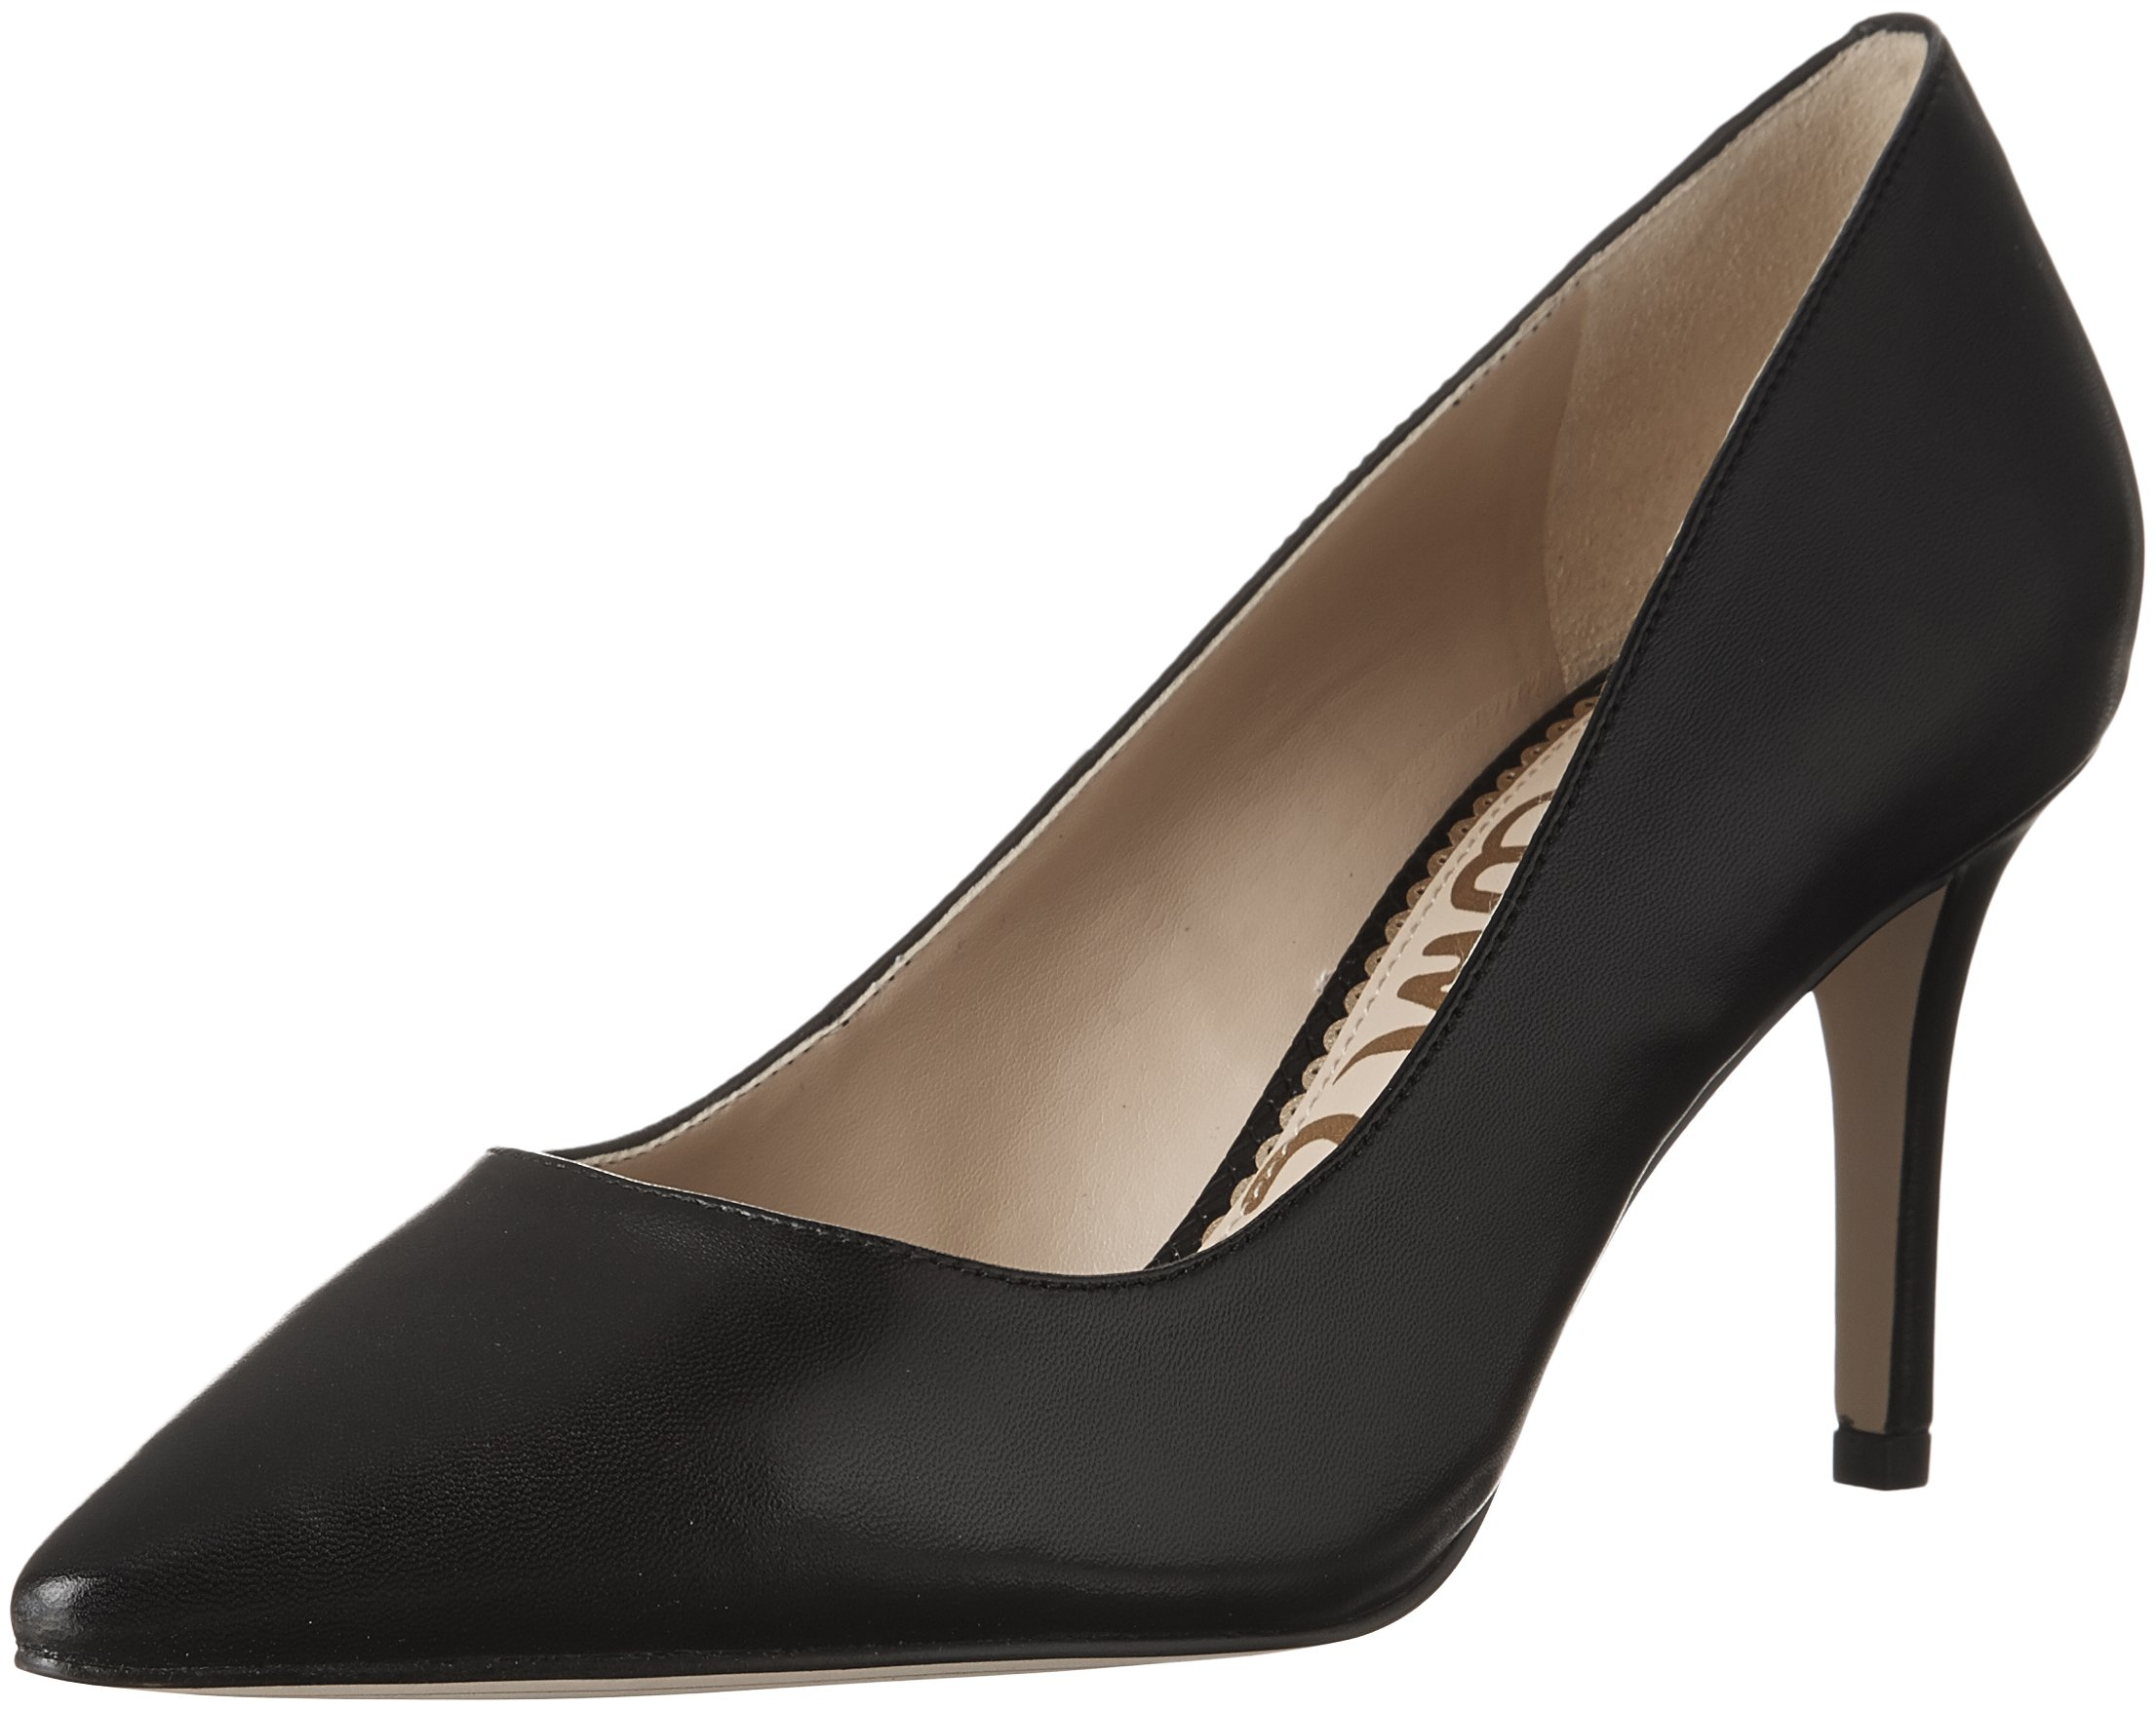 Sam Edelman Women's Tristan Pump, Black Leather, 6 Medium US